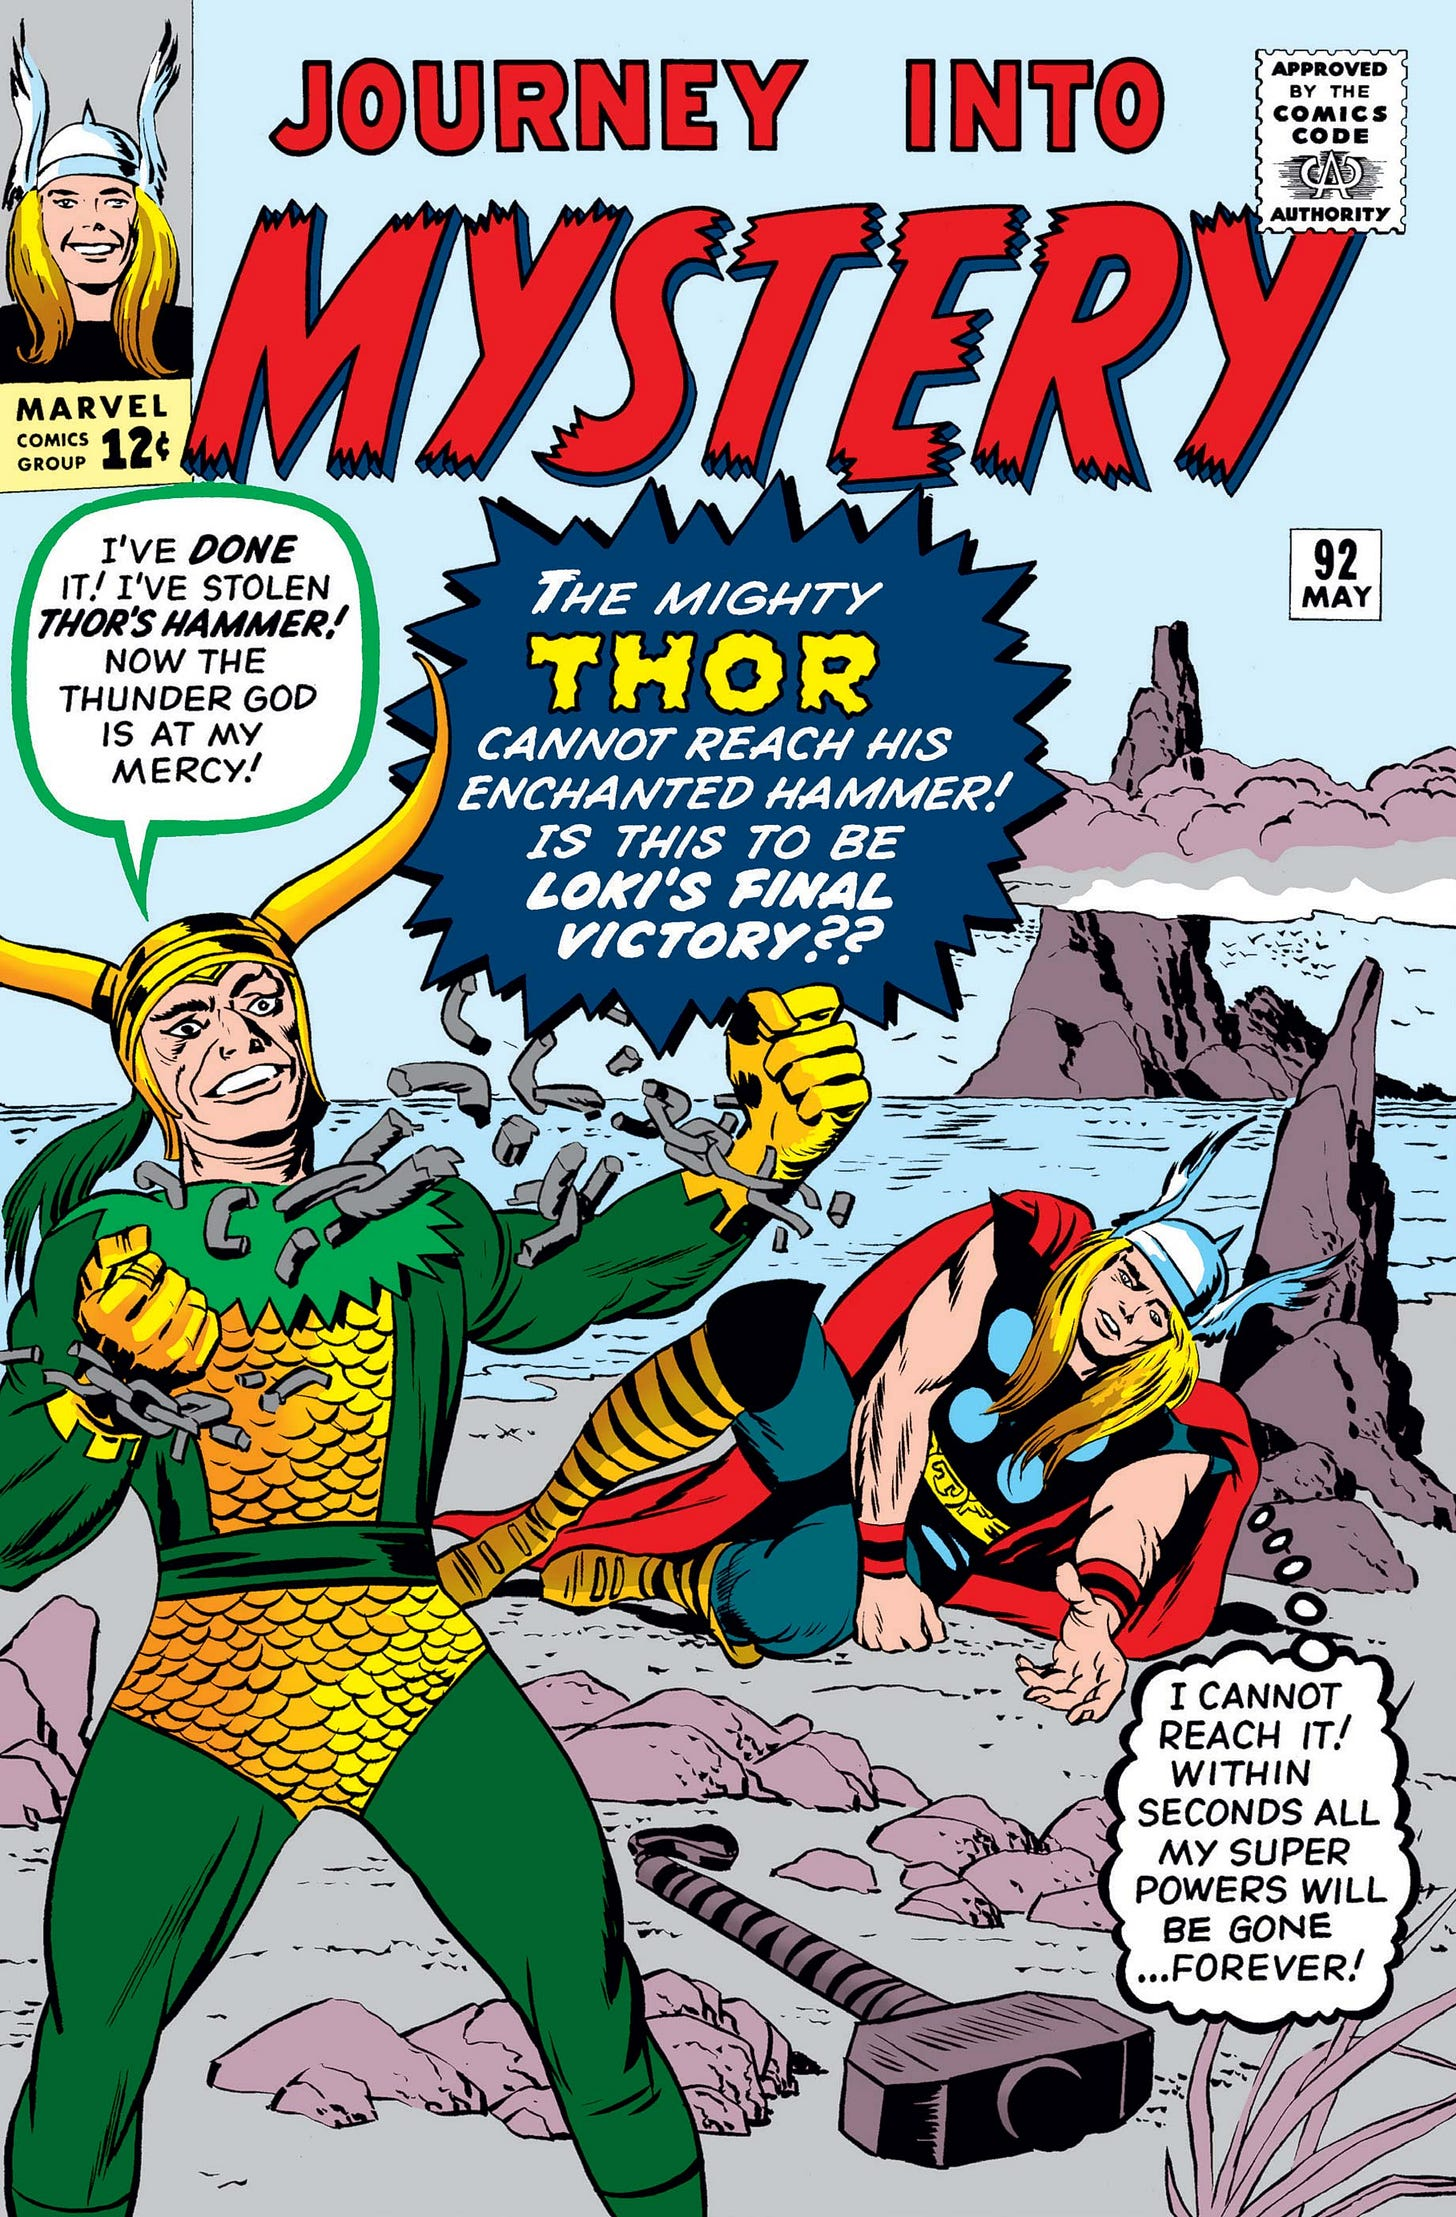 Journey Into Mystery (1952) #92 | Comic Issues | Marvel